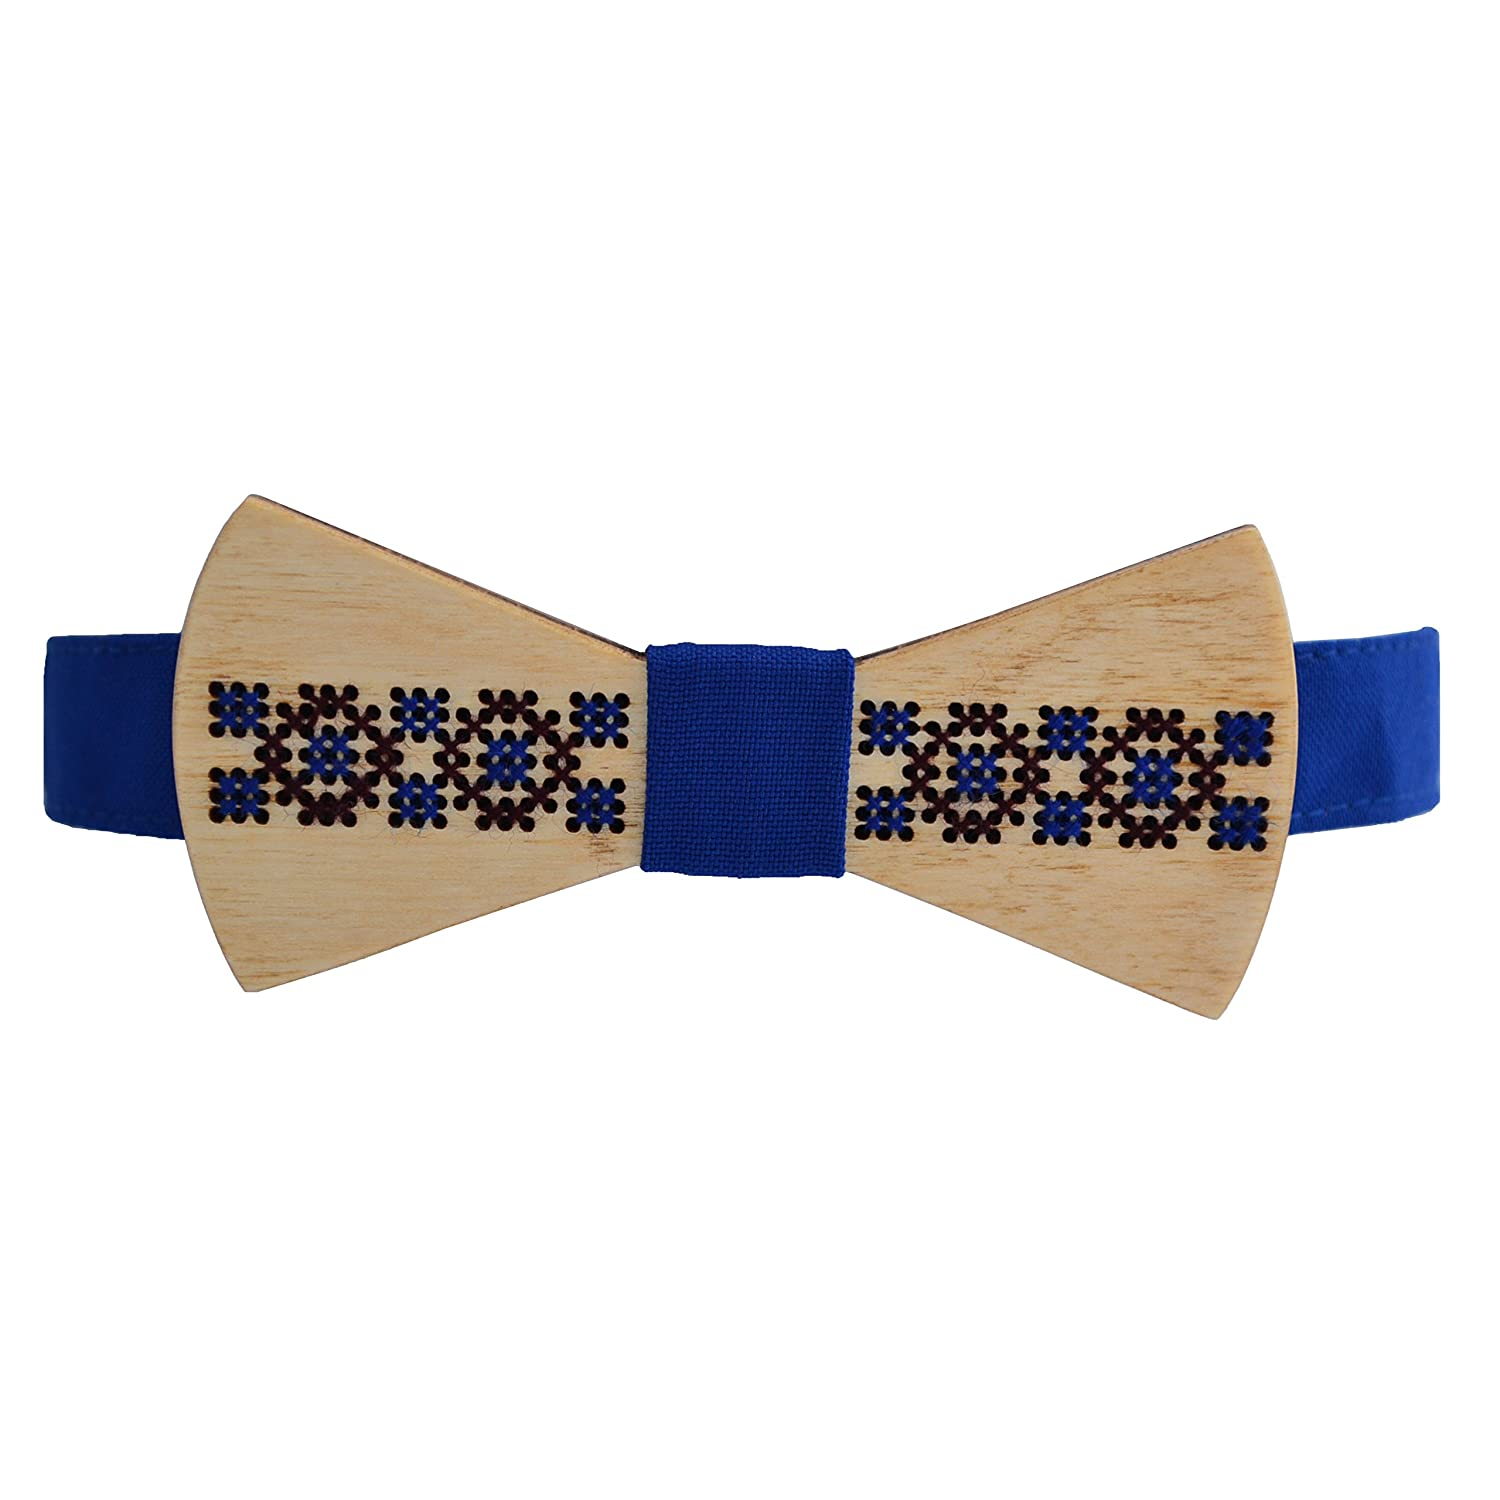 Unisex Embroidered blue and brown threads Wooden Bow Tie for Men